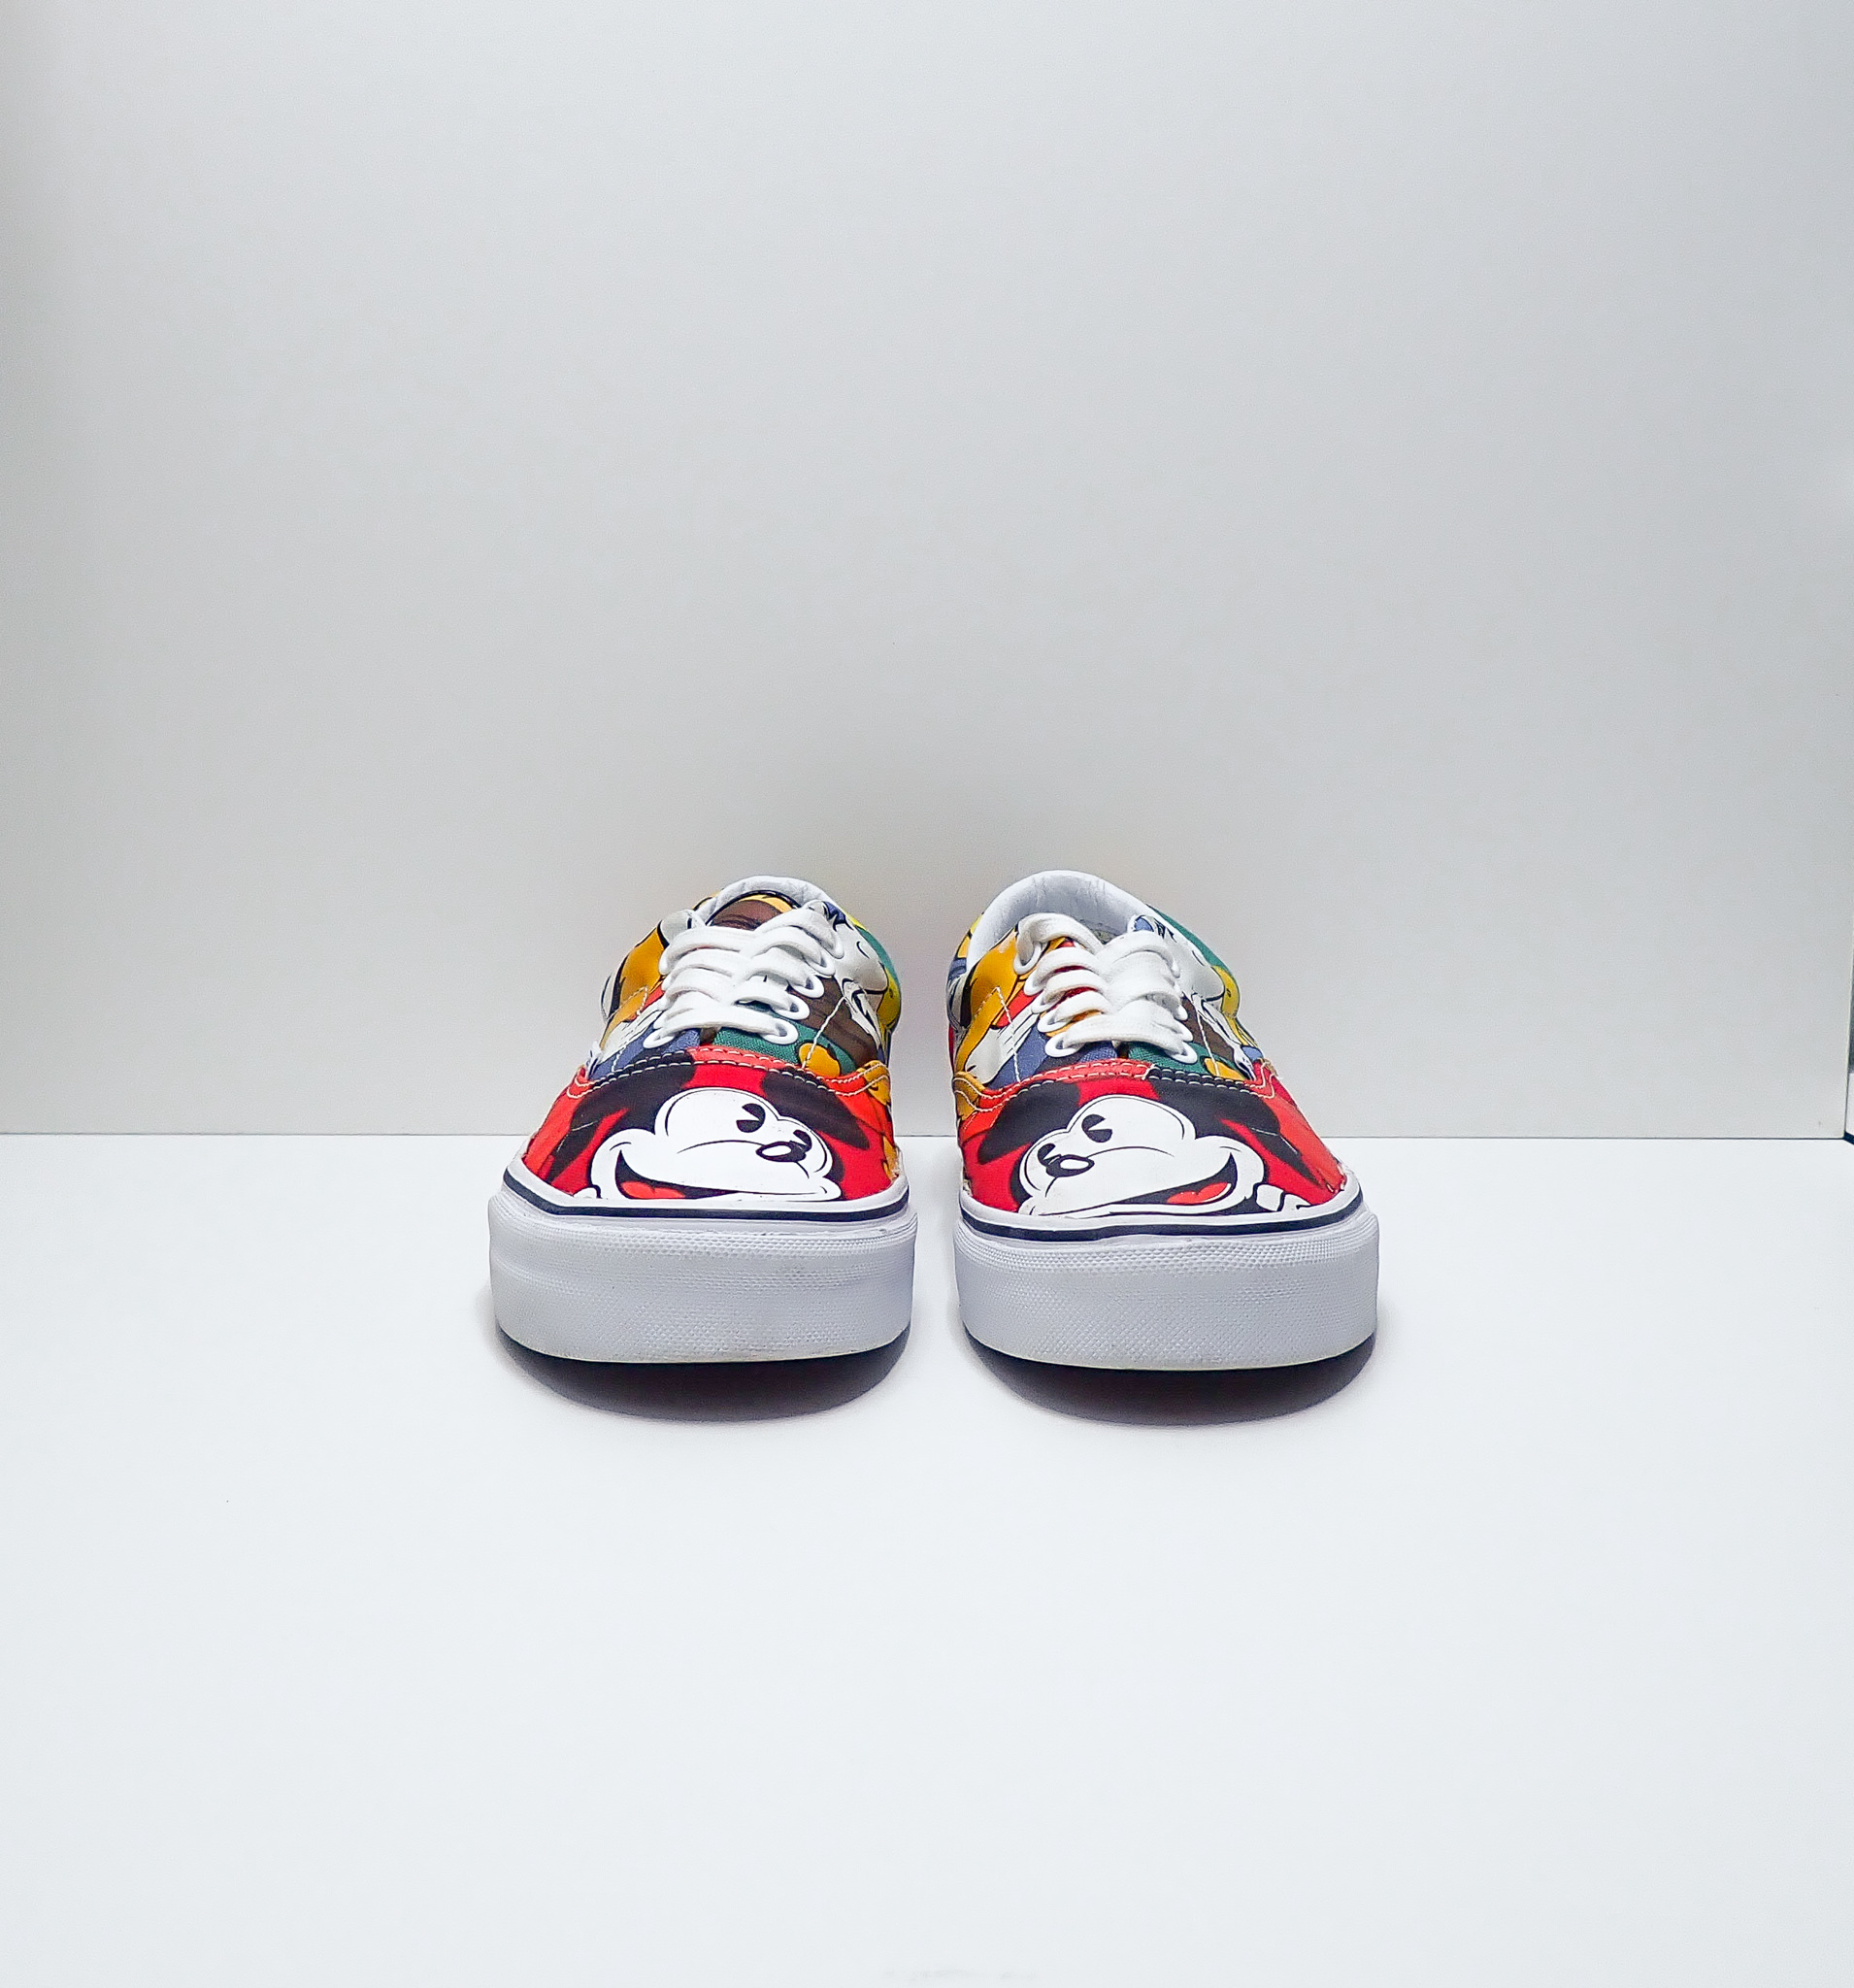 Vans Disney x Era Mickey and Friends